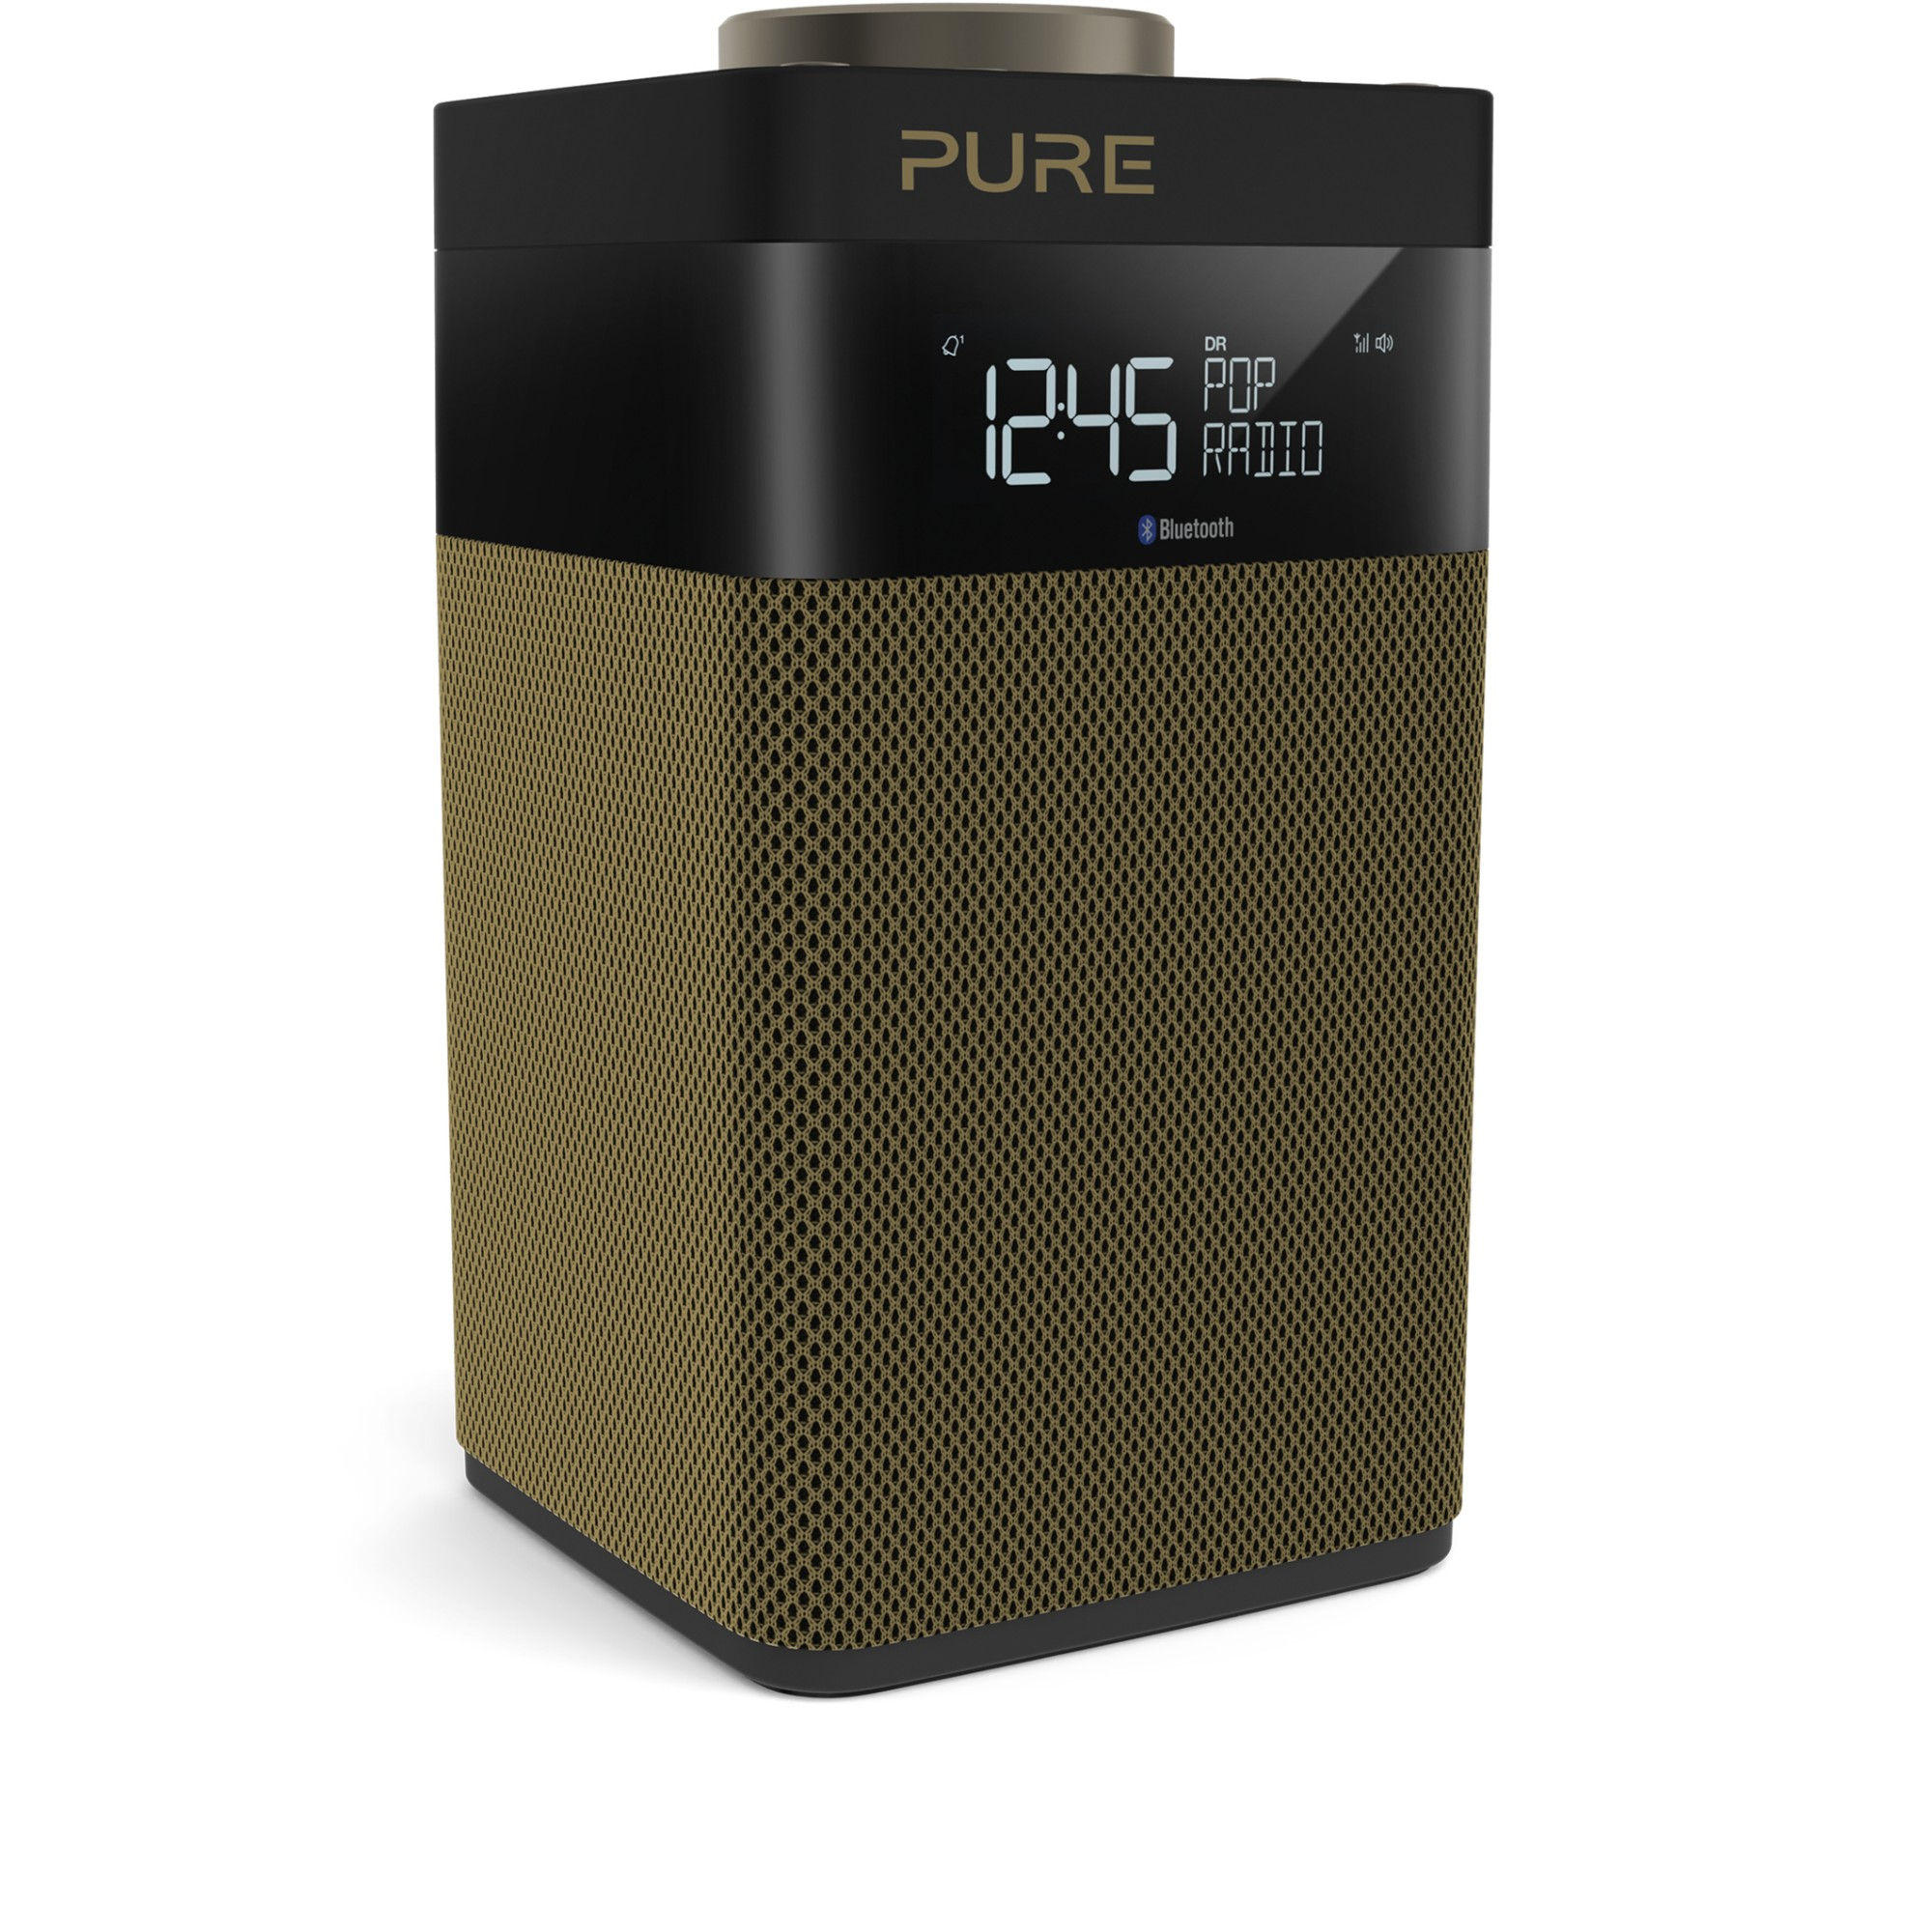 Pure Pop Midi S Portable Digital Black, Gold radio